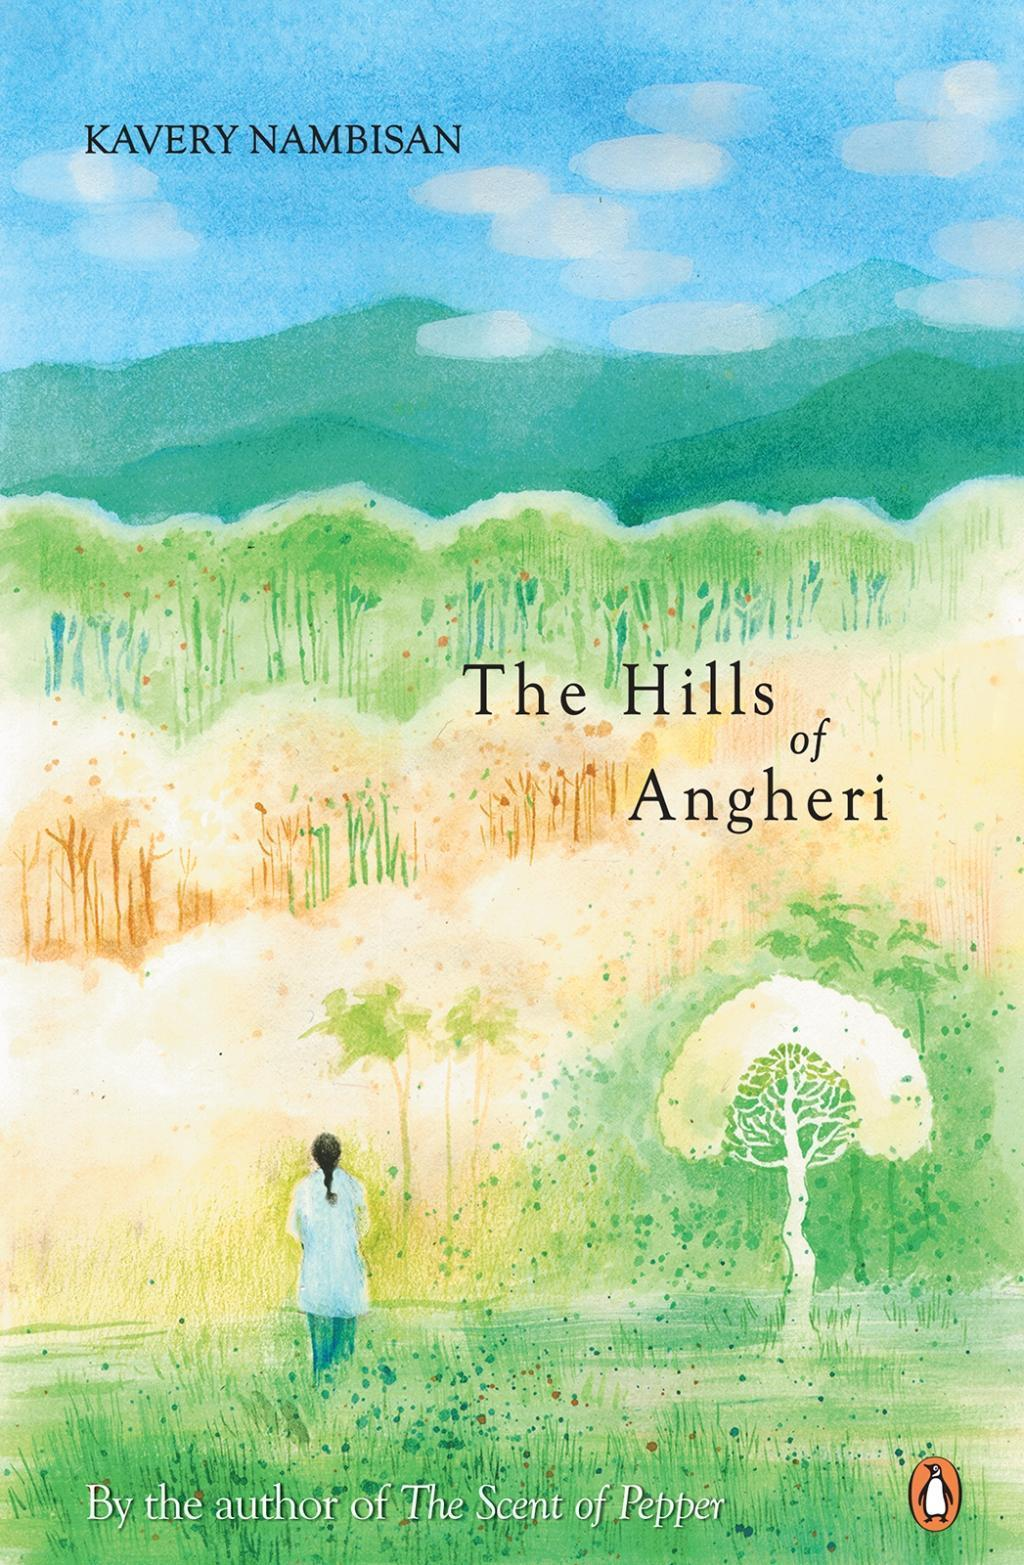 The Hills of Angheri